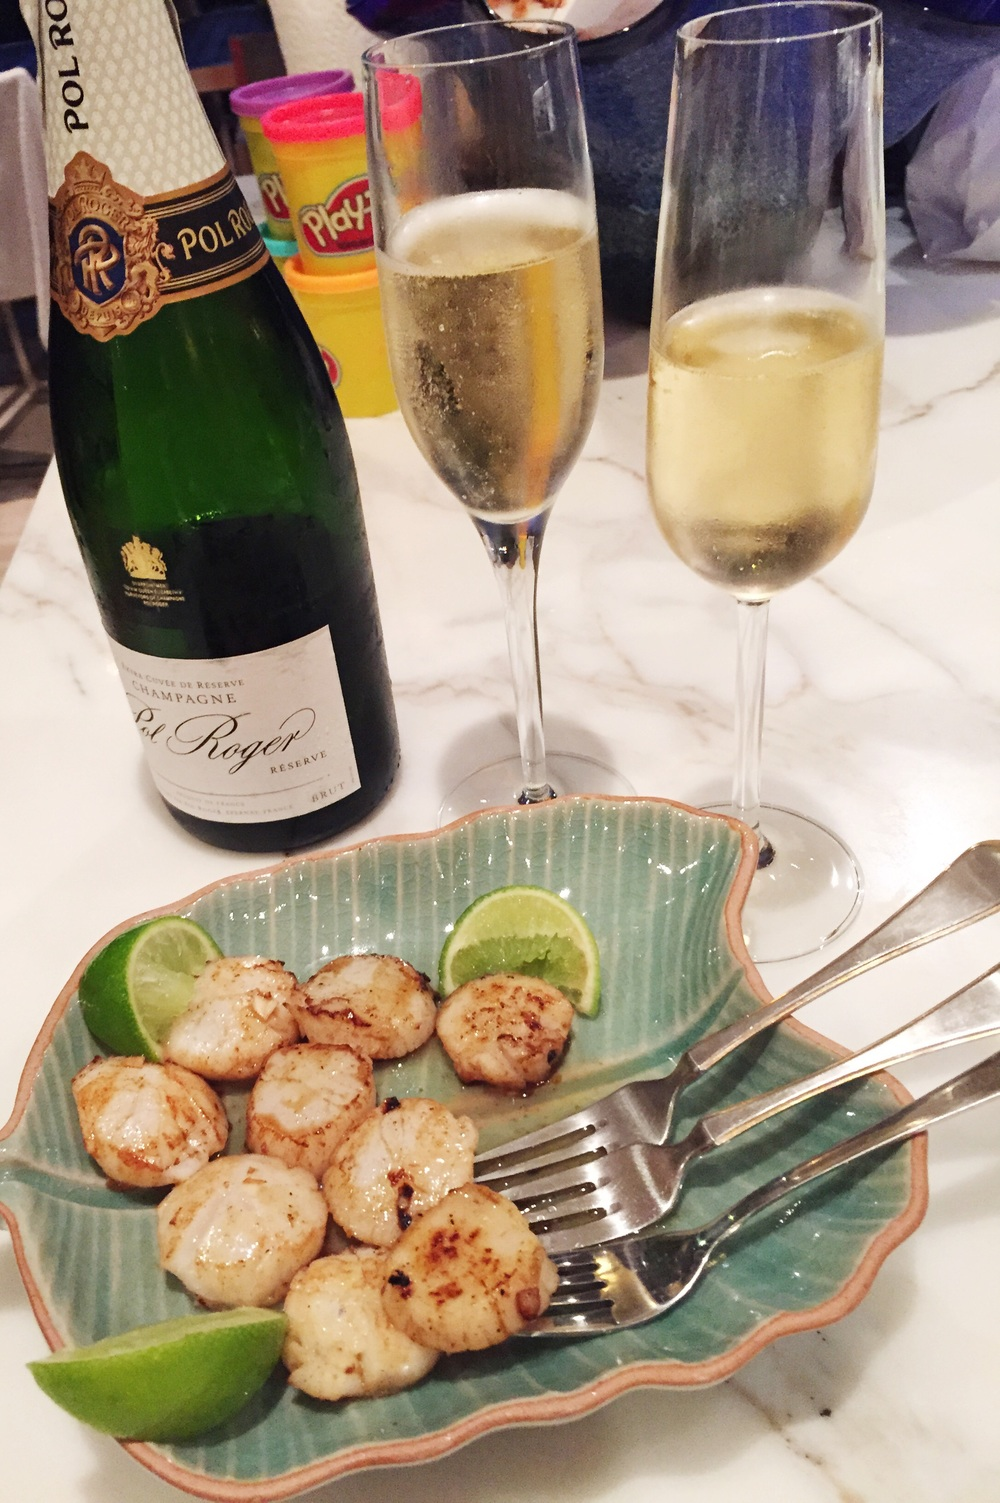 Scallops, playdoh and Pol Roger. All the elements required for a celebration!